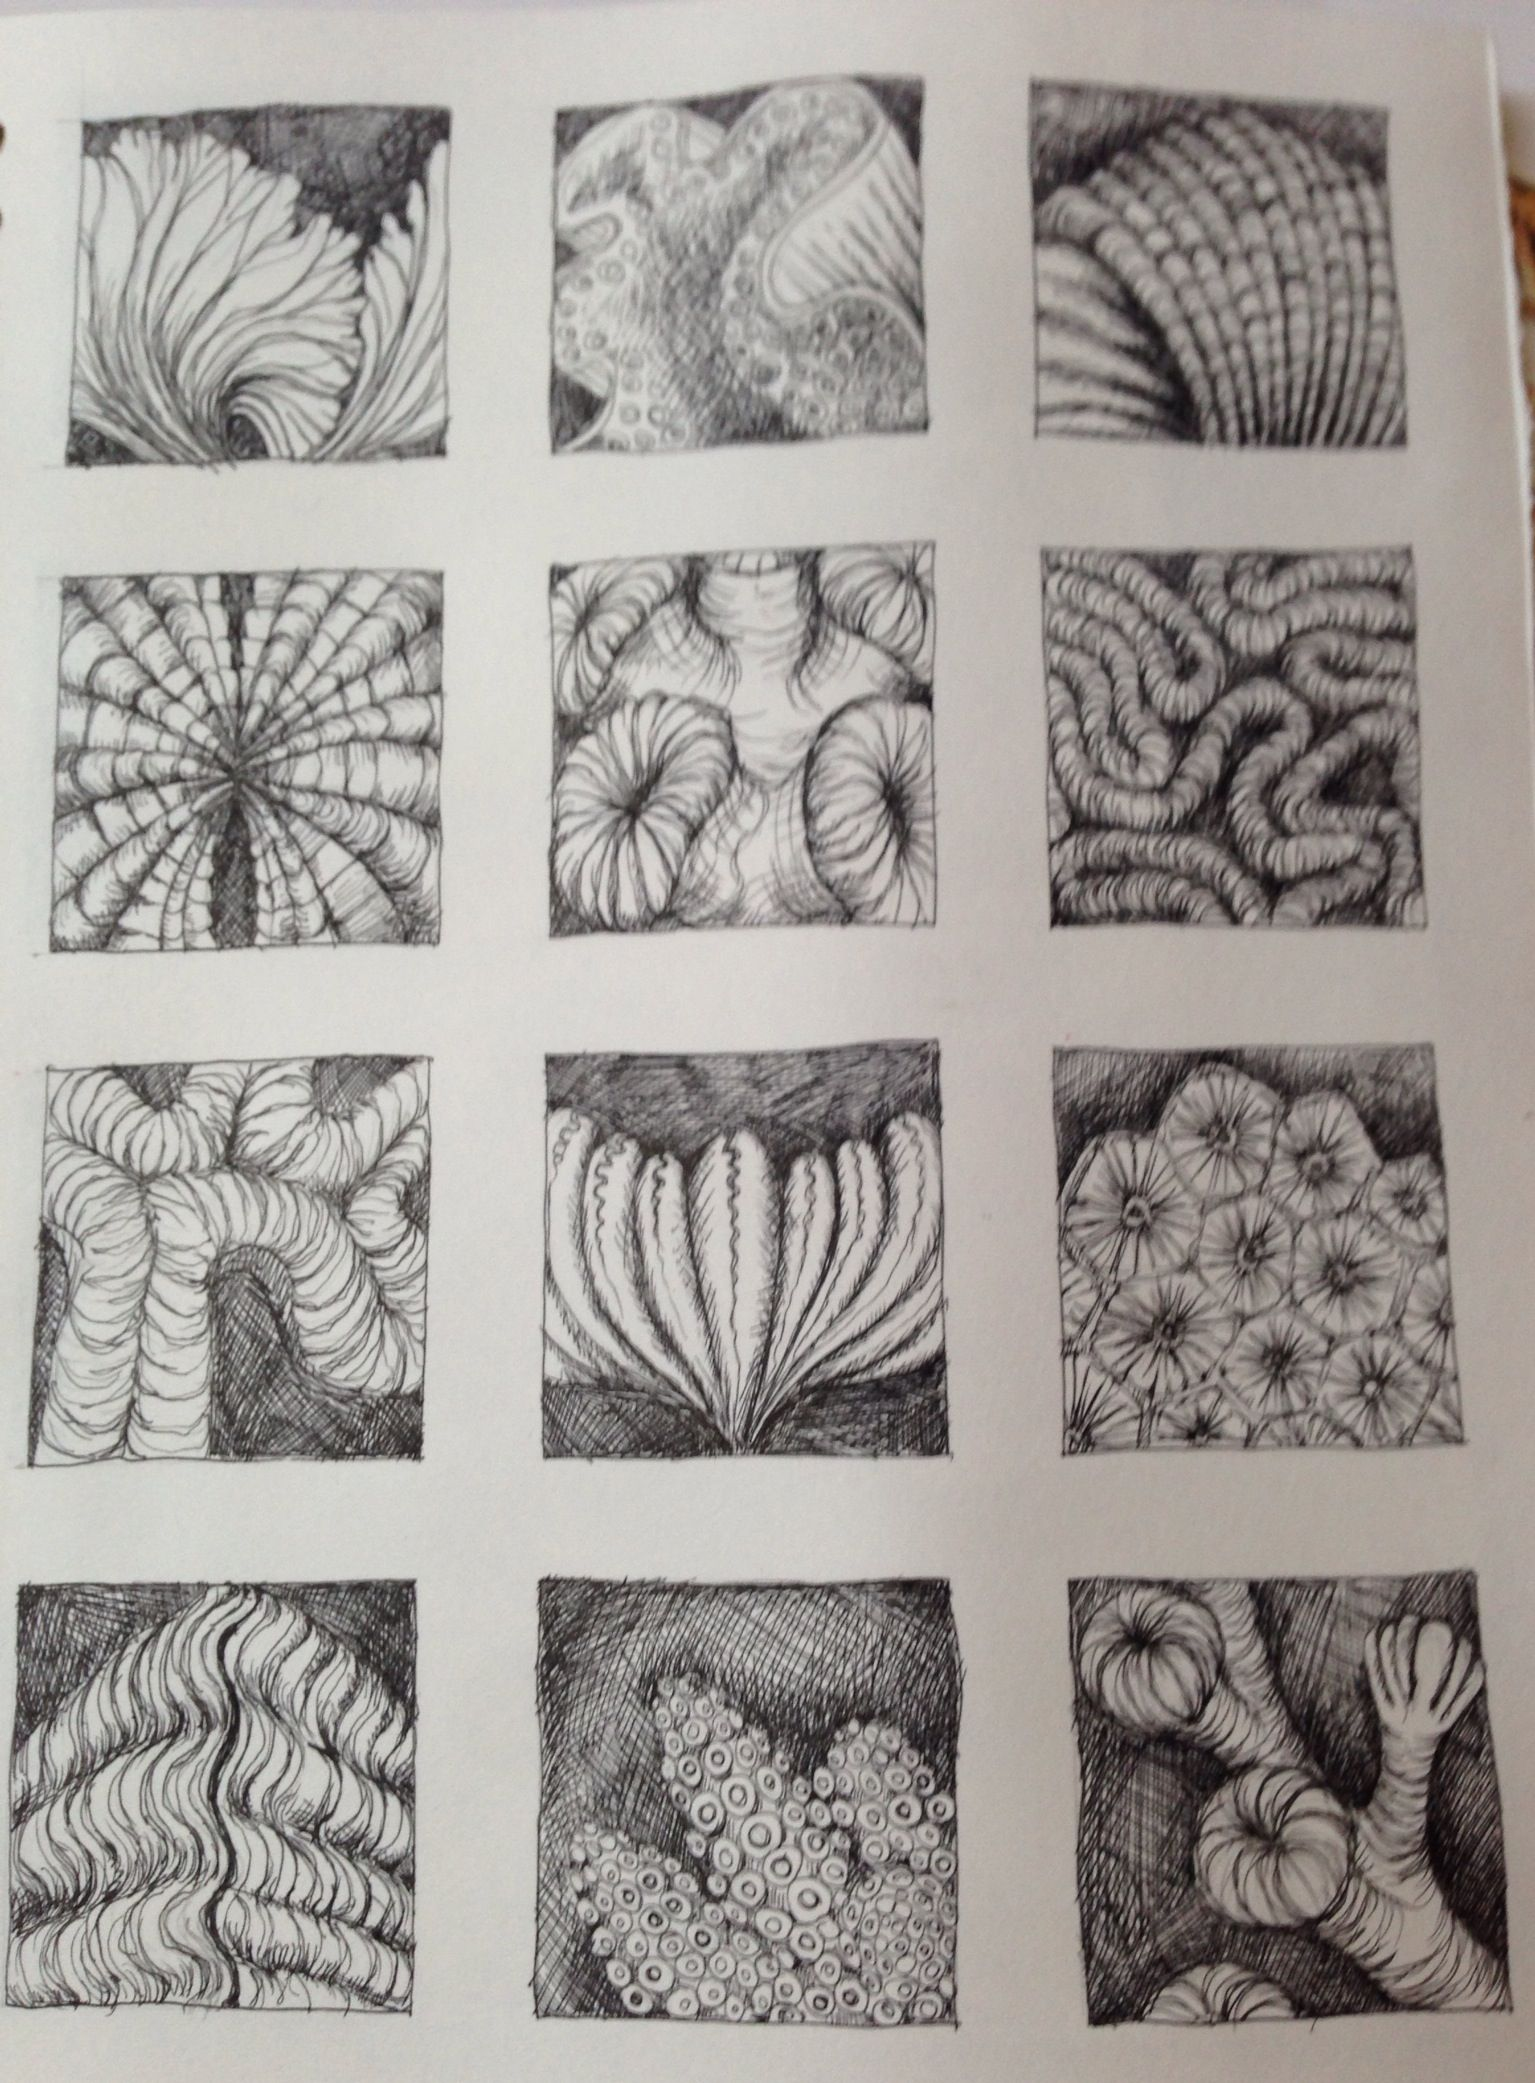 Form In Art And Design : Pen drawing of natural forms inspired by ernst haeckel